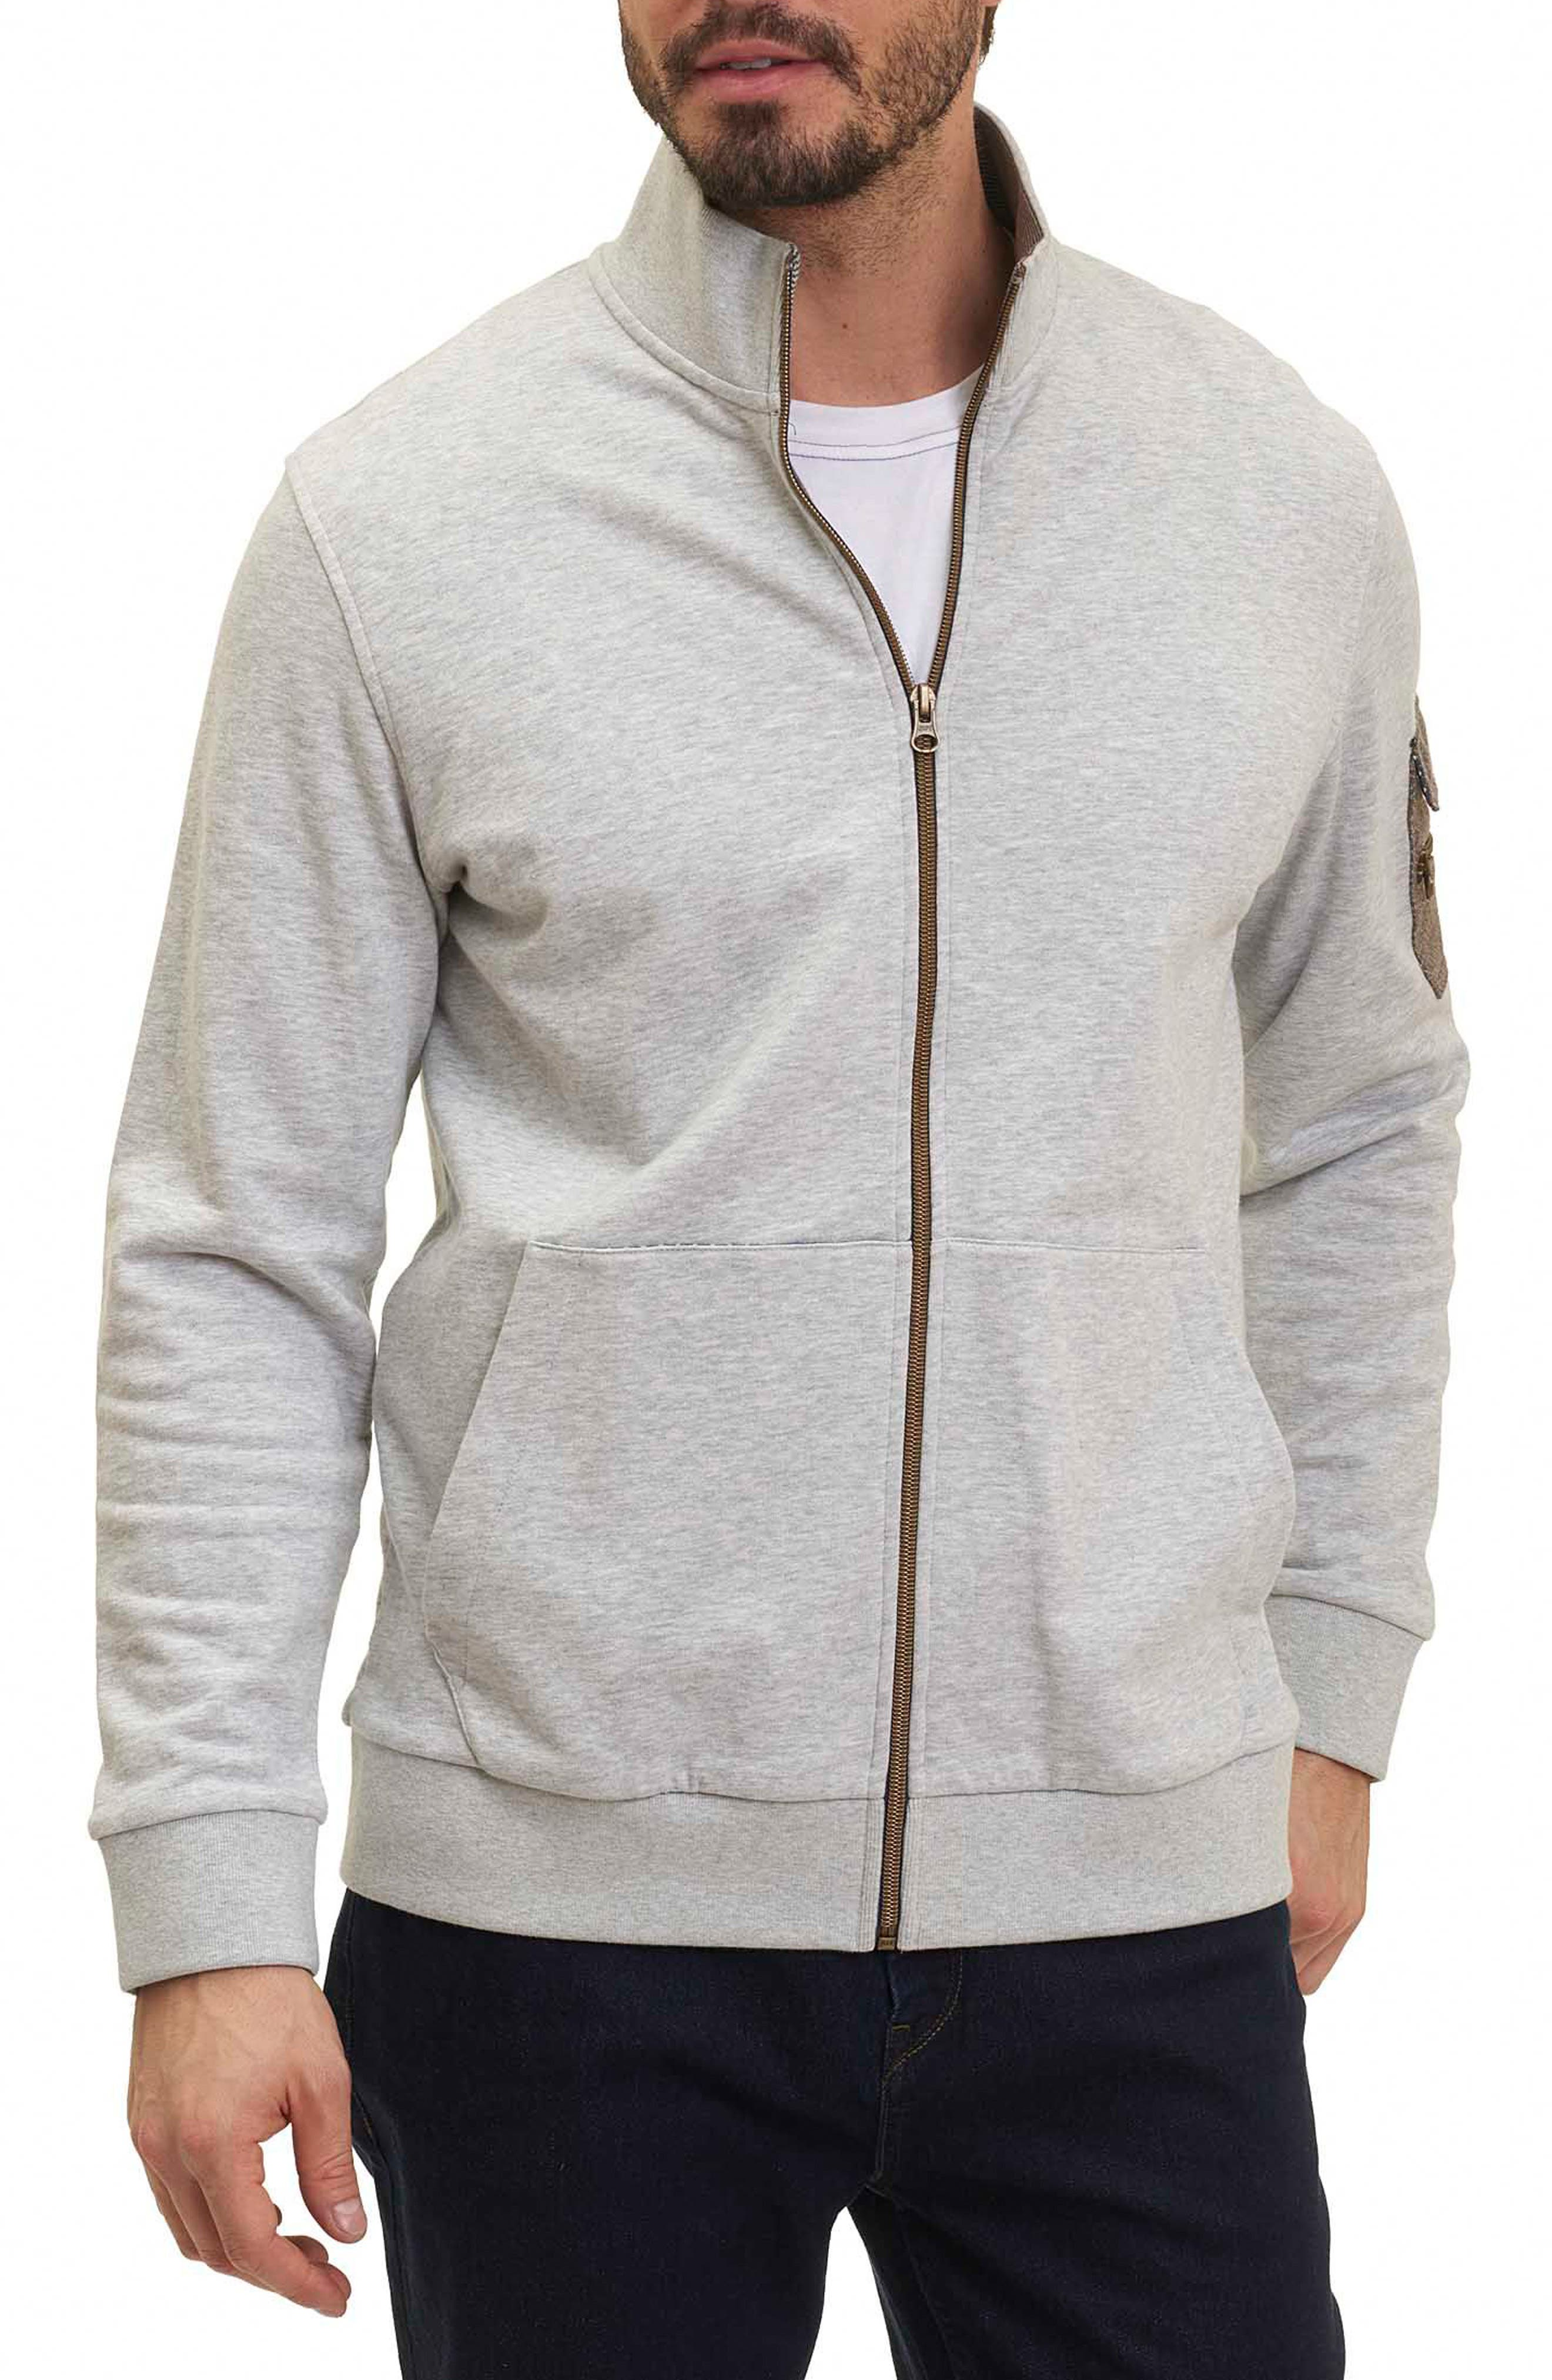 Main Image - Robert Graham Semarang French Terry Zip Jacket